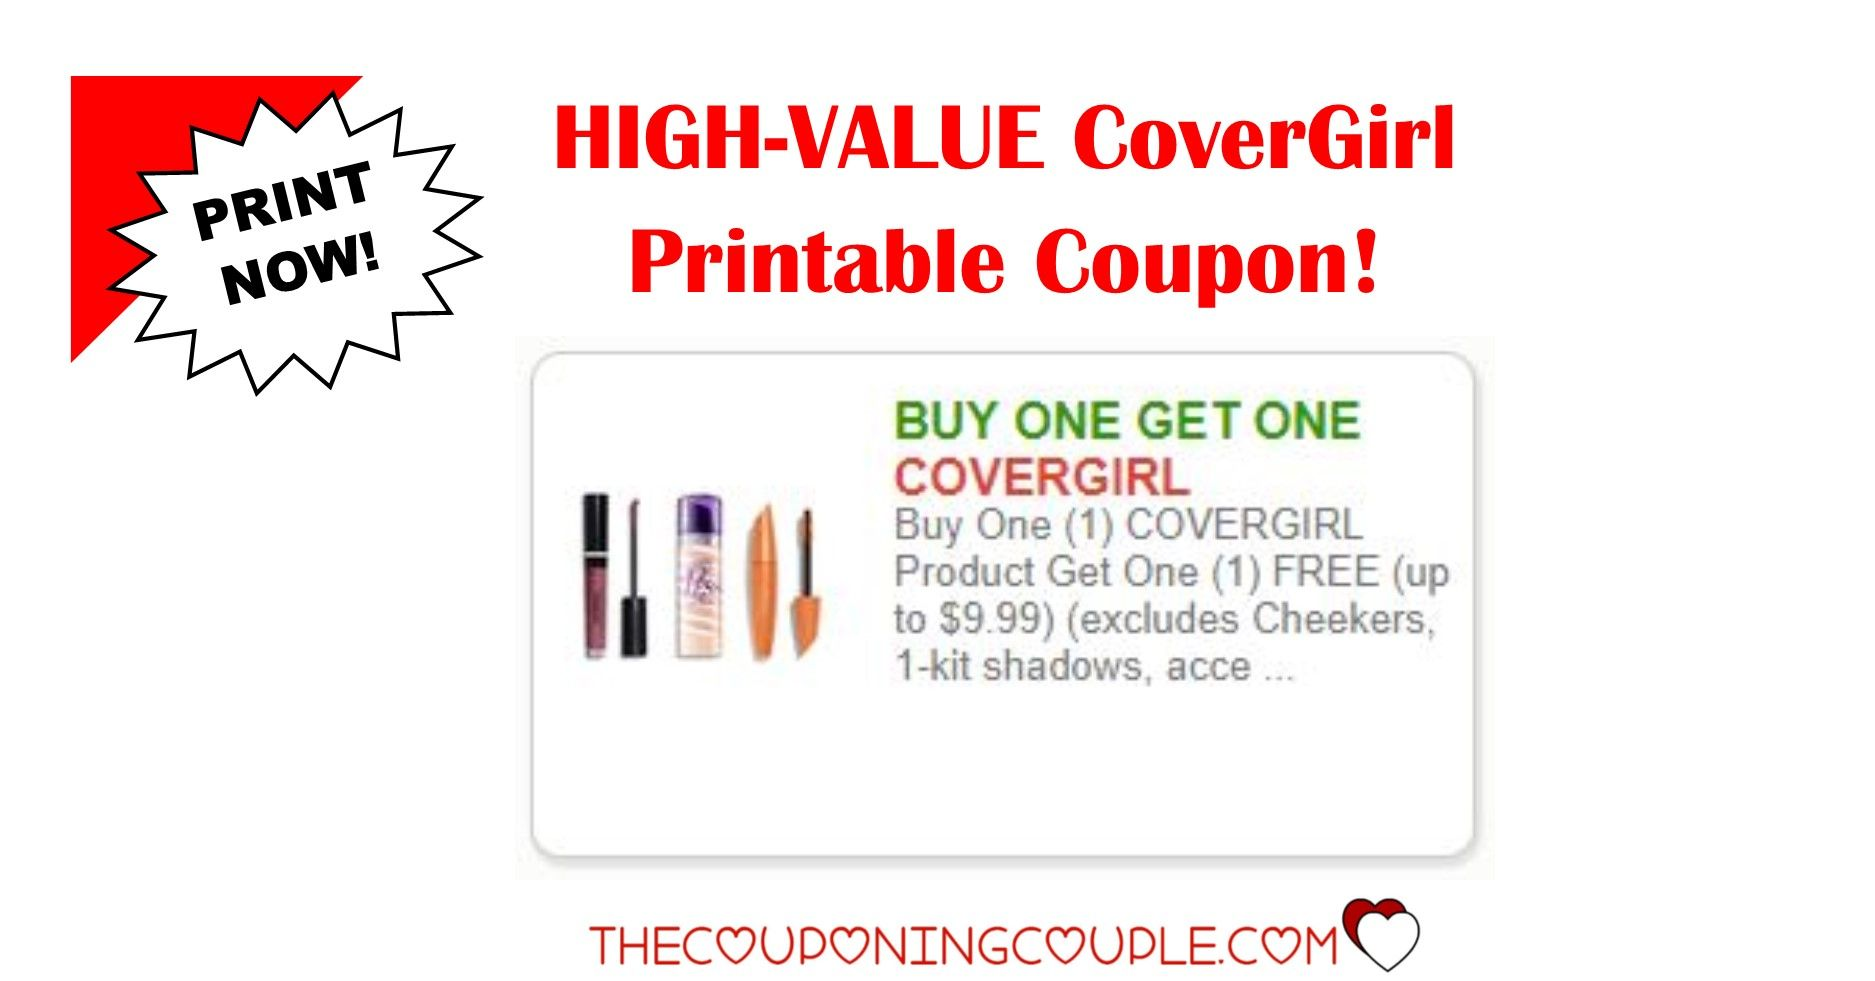 image regarding Covergirl Printable Coupons identified as 3 CoverGirl Printable Coupon ~ Incredible Discounts! Print Already